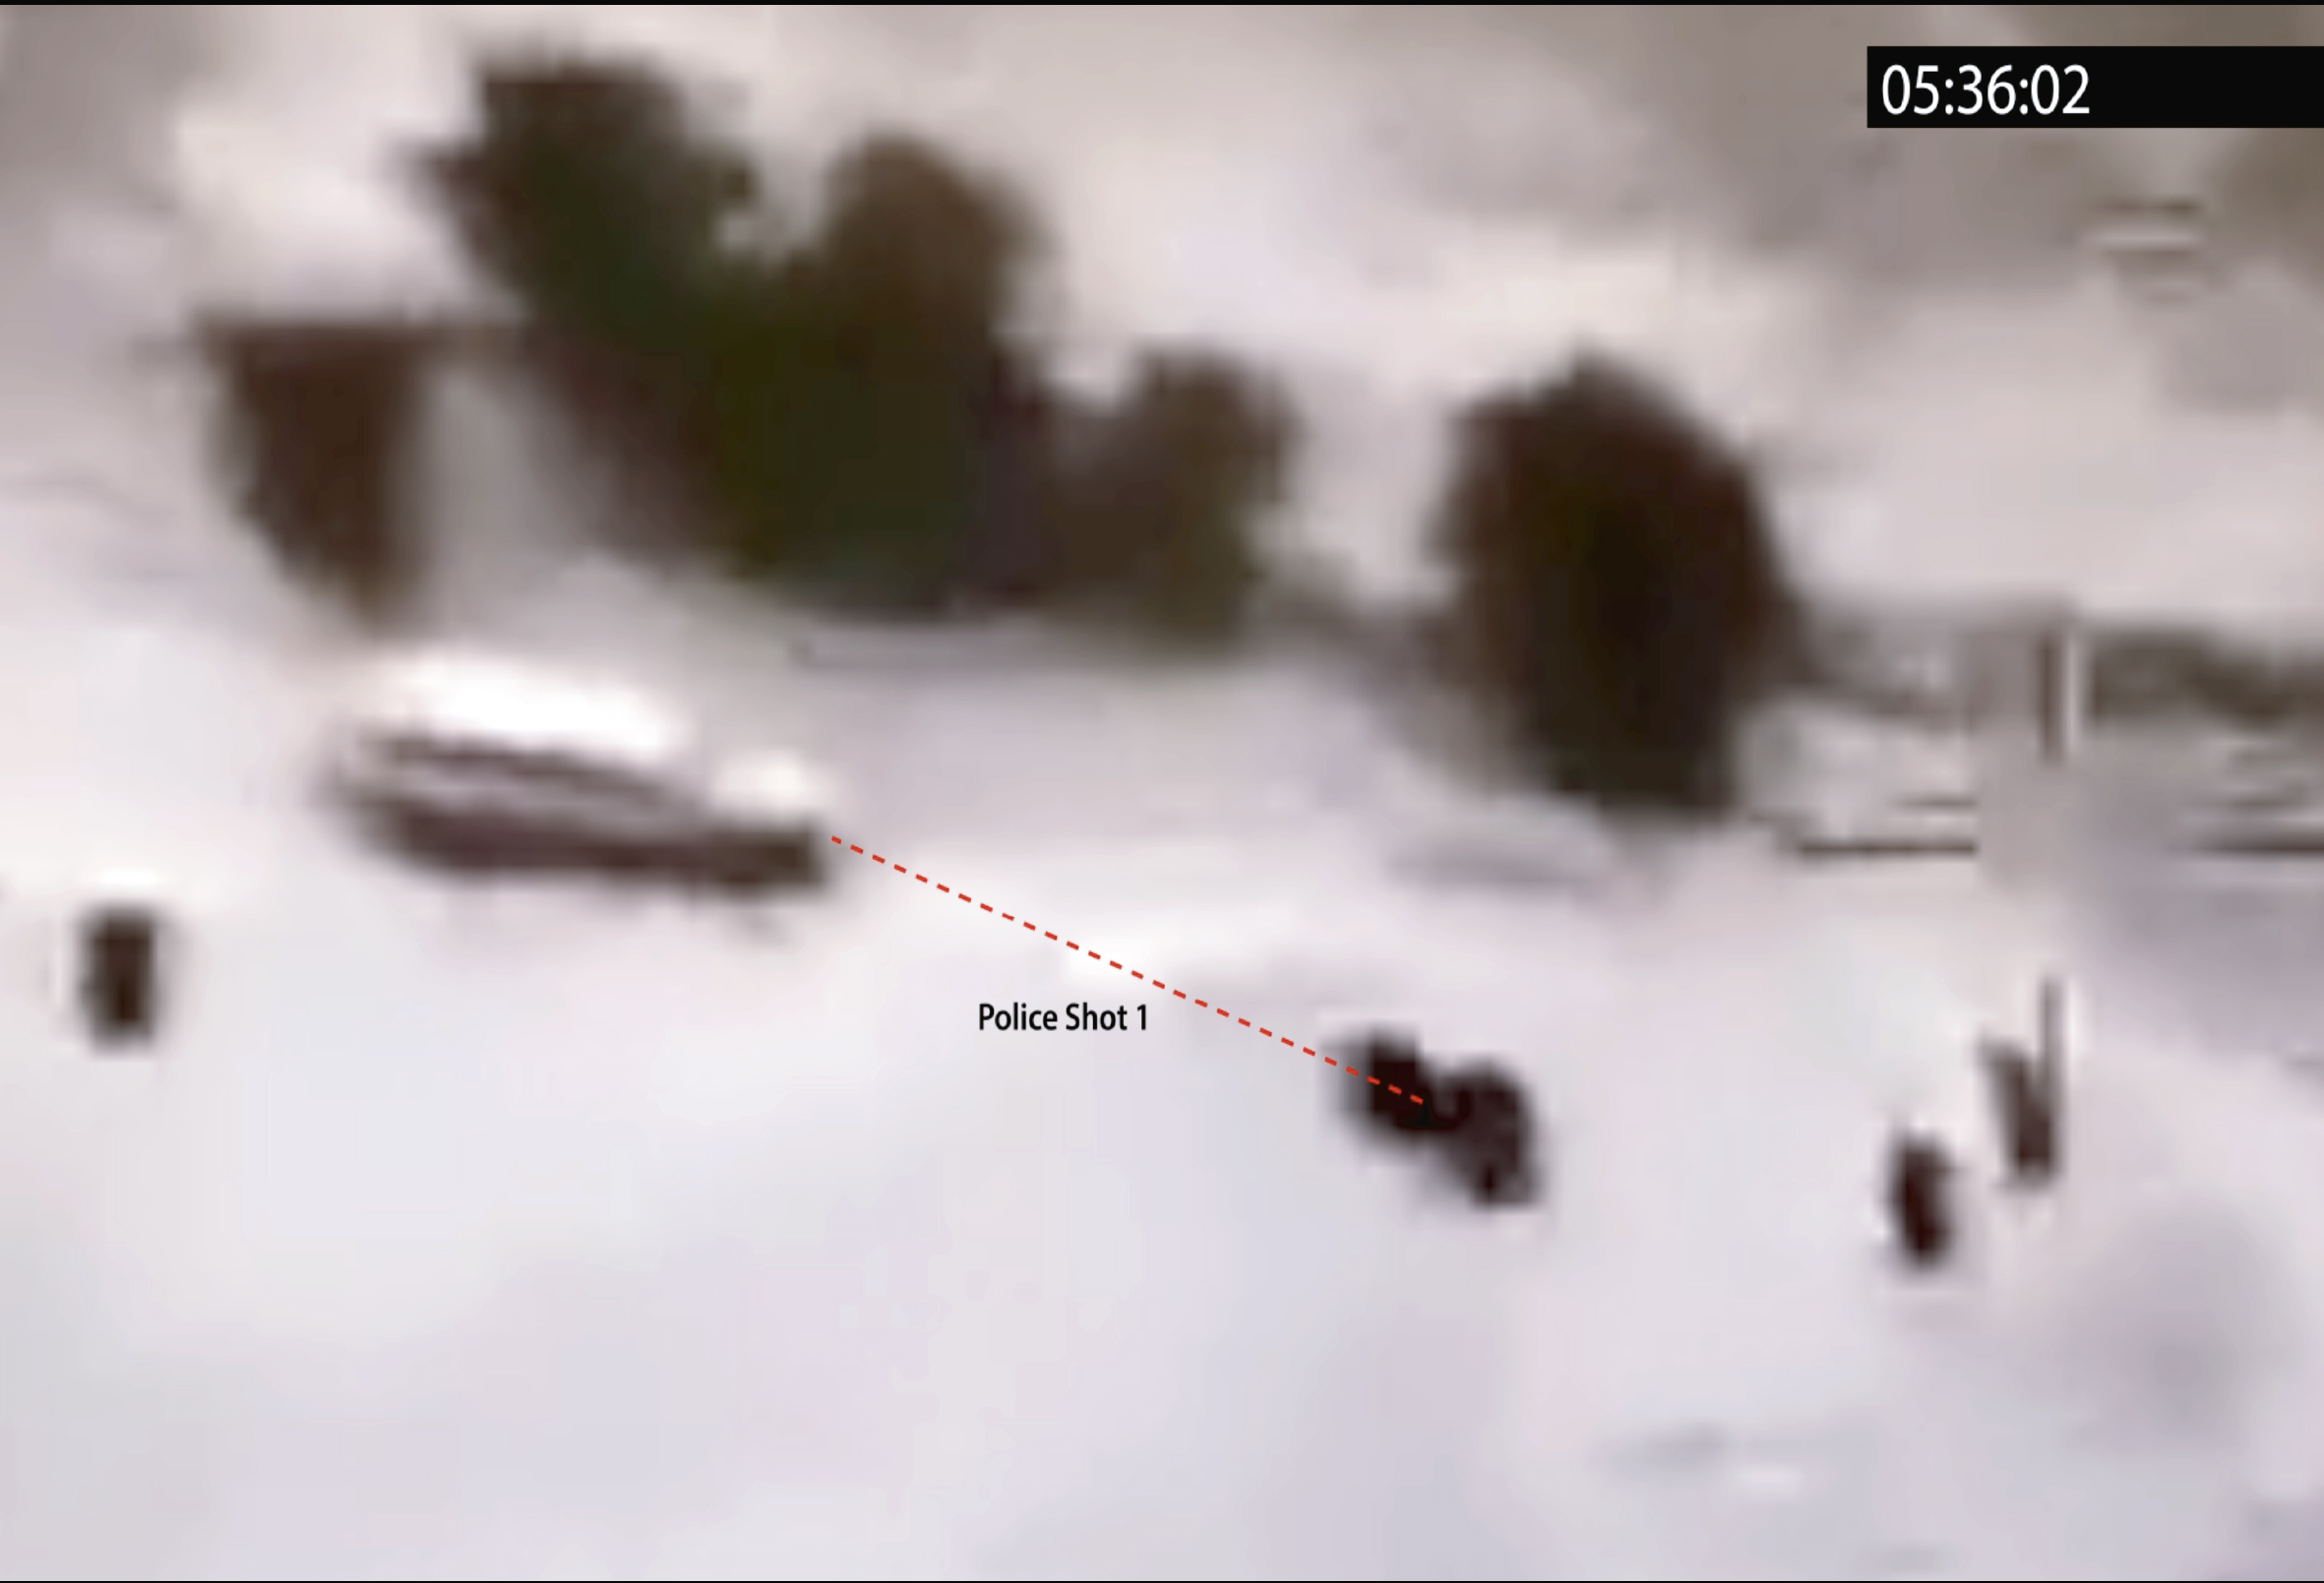 © Forensice Architecture, 2018. Killing in Umm al-Hiran, 18 January 2017 (still). Annotations by Forensic Architecture on Israeli police footage